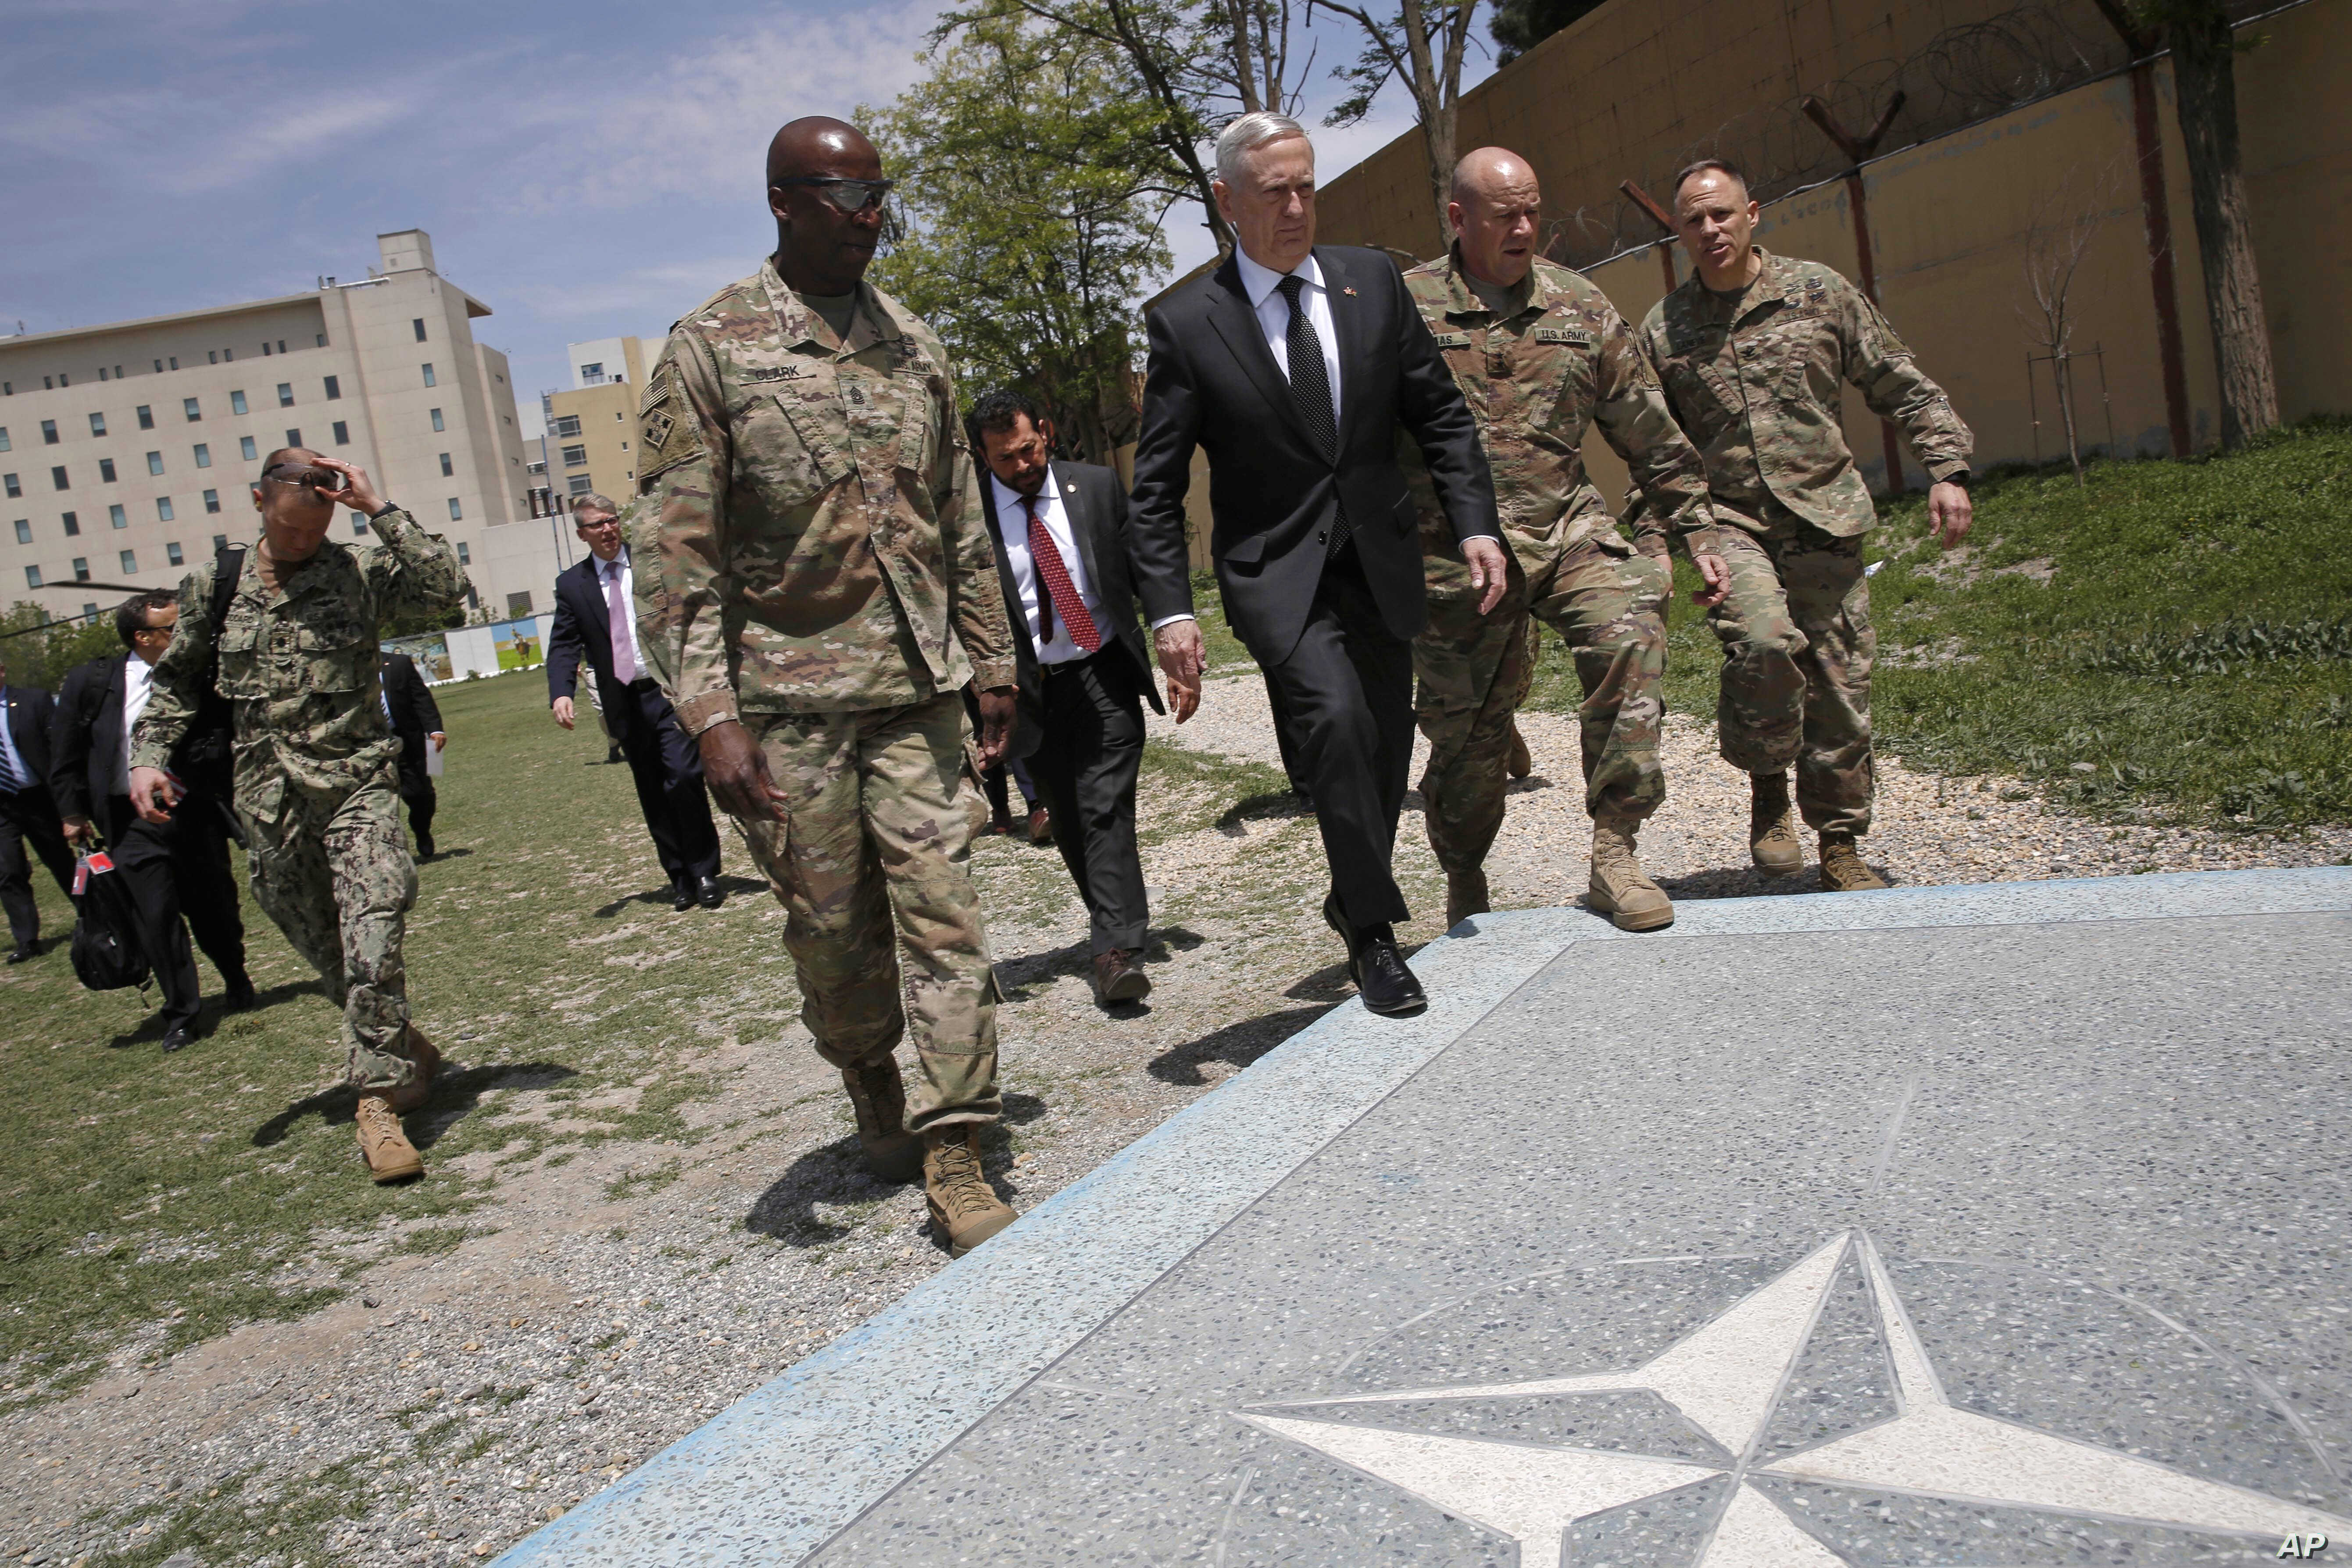 U.S. Defense Secretary James Mattis, third right, walks with U.S. Army Command Sergeant Major David Clark, left, and General Christopher Haas, second right, as he arrives at the Resolute Support headquarters in Kabul, Afghanistan,  April 24, 2017.